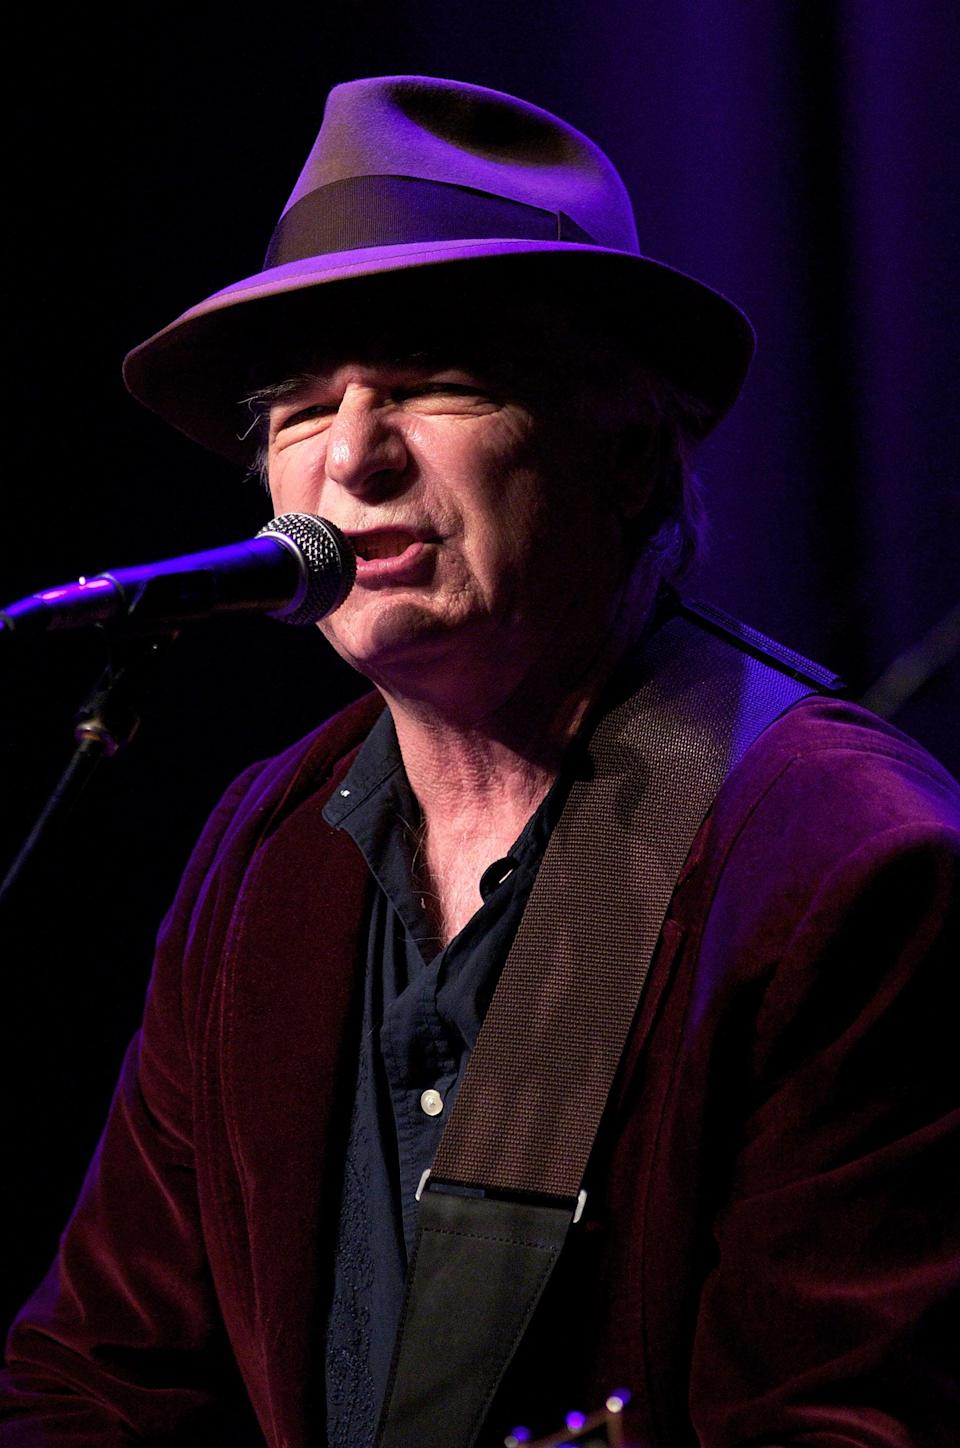 """<p>On Jan. 18, the folk singer <a href=""""https://www.billboard.com/articles/news/8548437/david-olney-nashville-singer-songwriter-dies-onstage-at-71"""" class=""""link rapid-noclick-resp"""" rel=""""nofollow noopener"""" target=""""_blank"""" data-ylk=""""slk:died from a heart attack"""">died from a heart attack</a> while performing on stage at the 30A Songwriters Festival in Florida. He was 71.</p>"""